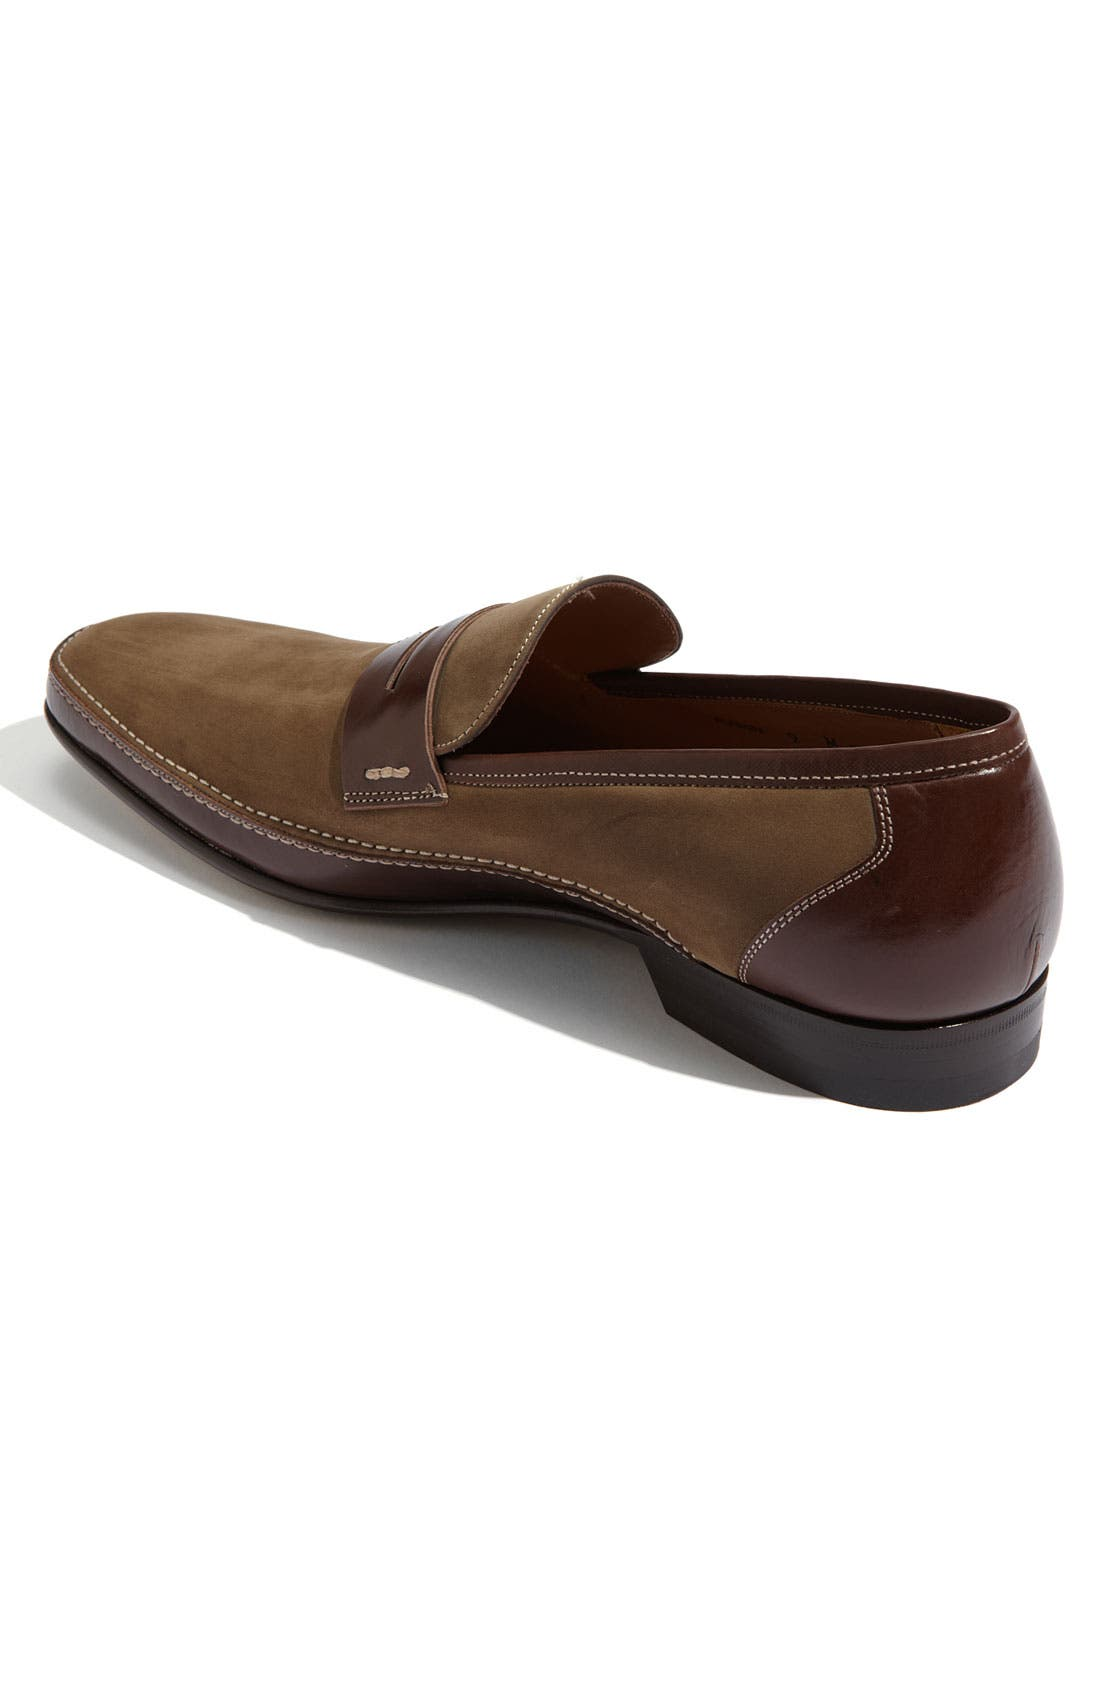 Alternate Image 2  - Mezlan 'Ruskin' Penny Loafer